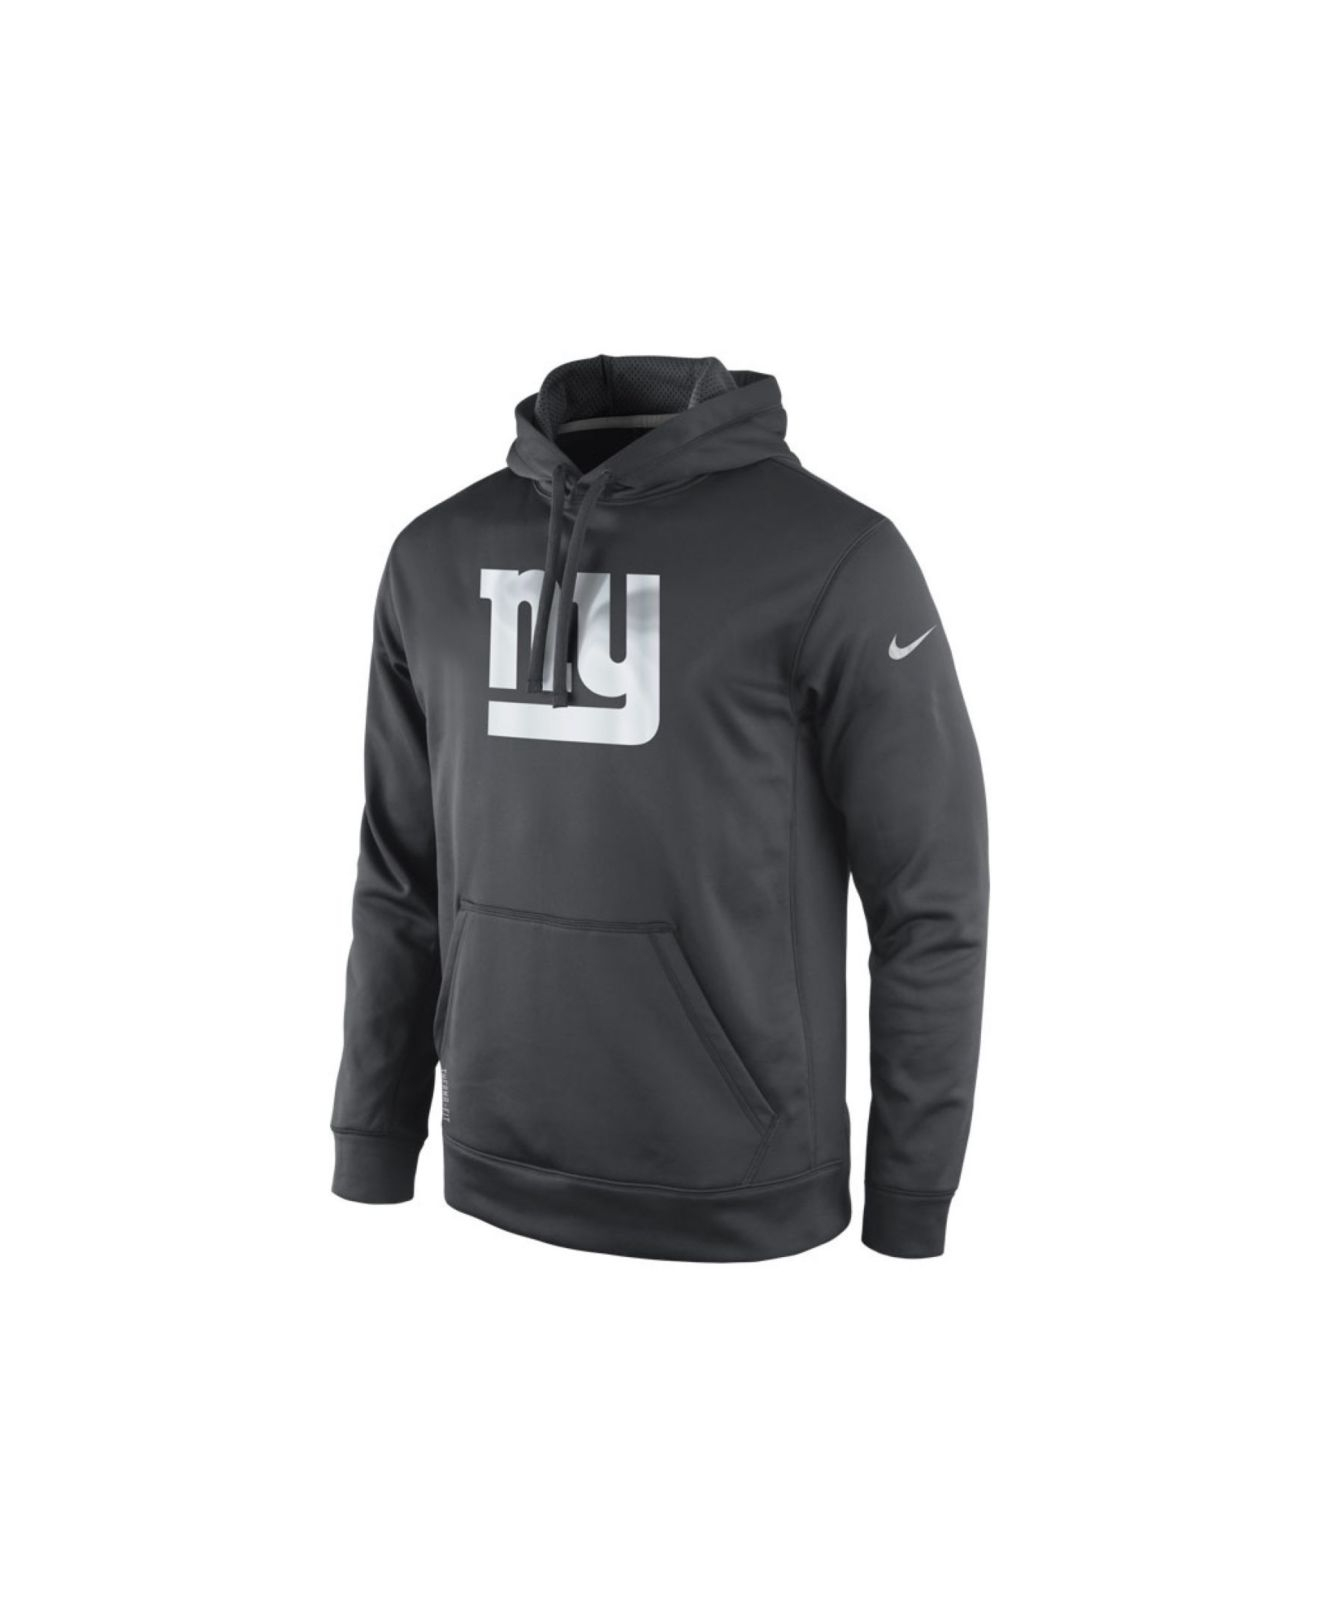 Lyst - Nike Mens New York Giants Platinum Ko Hoodie in Gray for Men 9cb7d0681